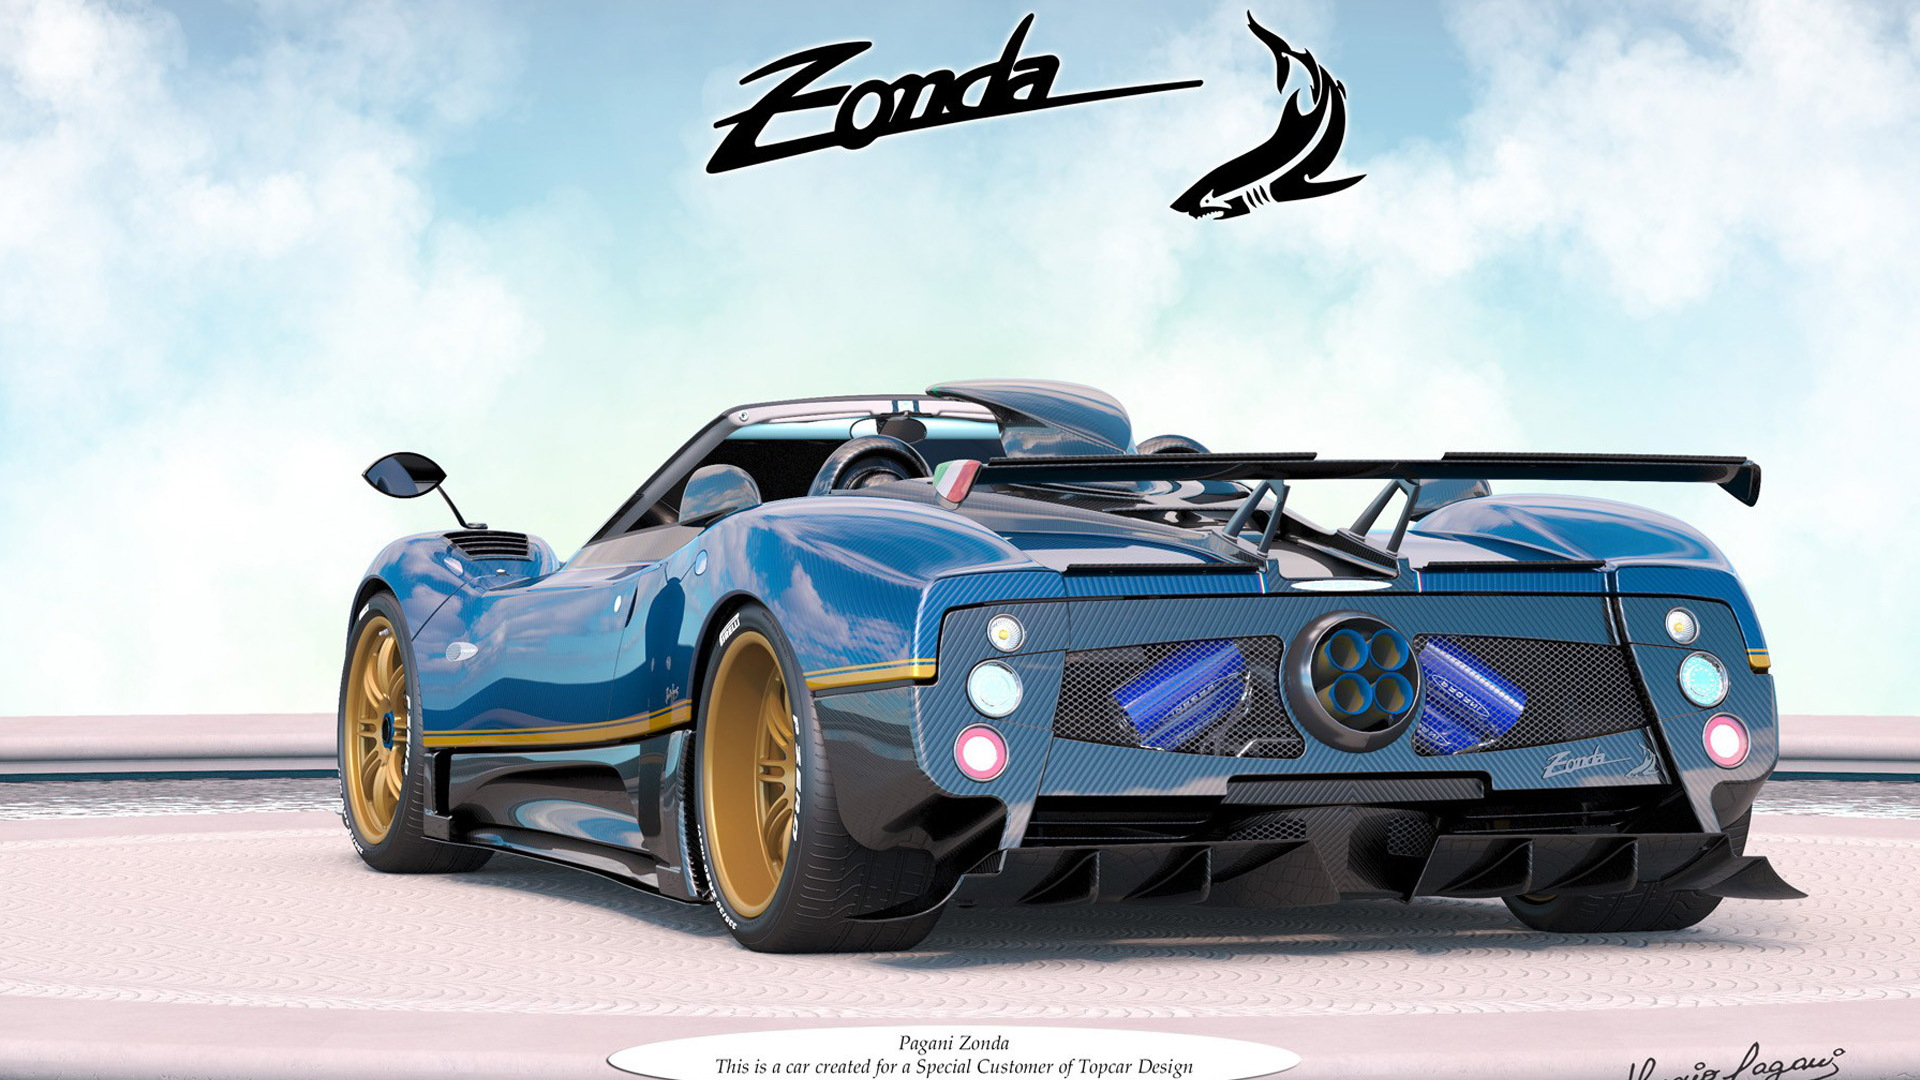 Pagani Zonda commissioned by a customer of TopCar Design